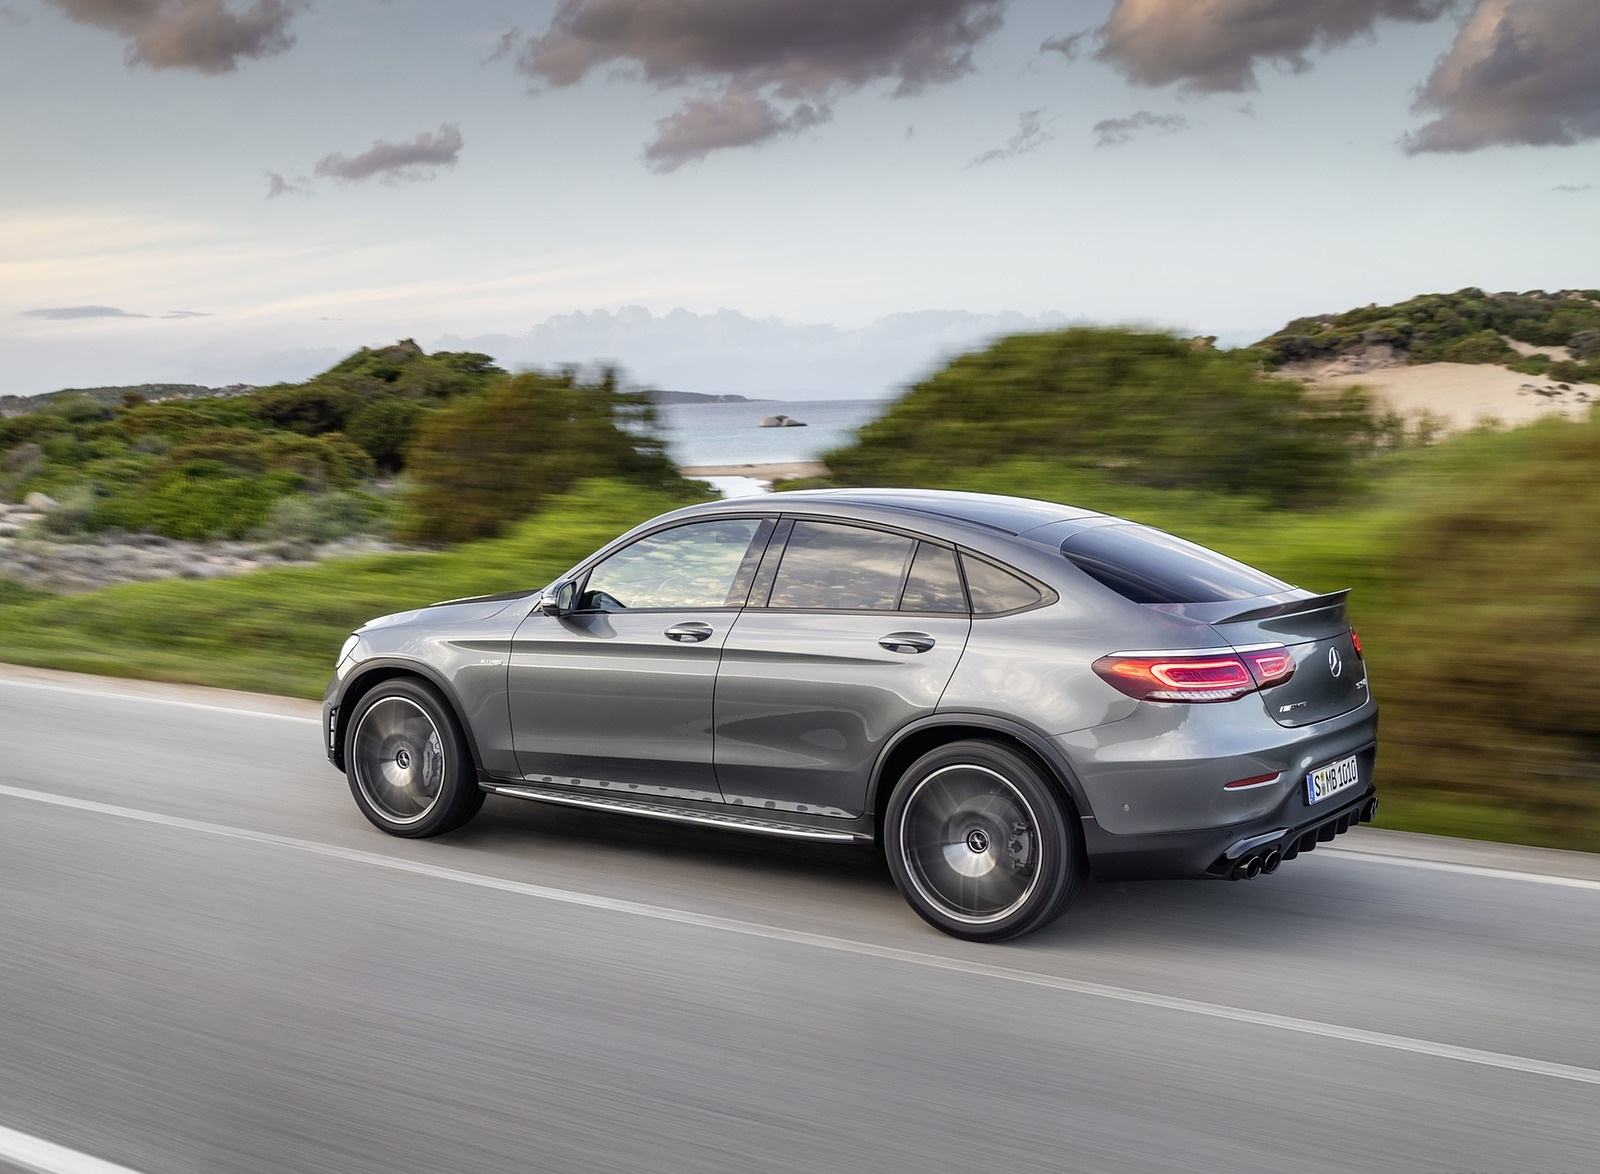 2020 Mercedes-AMG GLC 43 4MATIC Coupe Rear Three-Quarter Wallpapers (7)